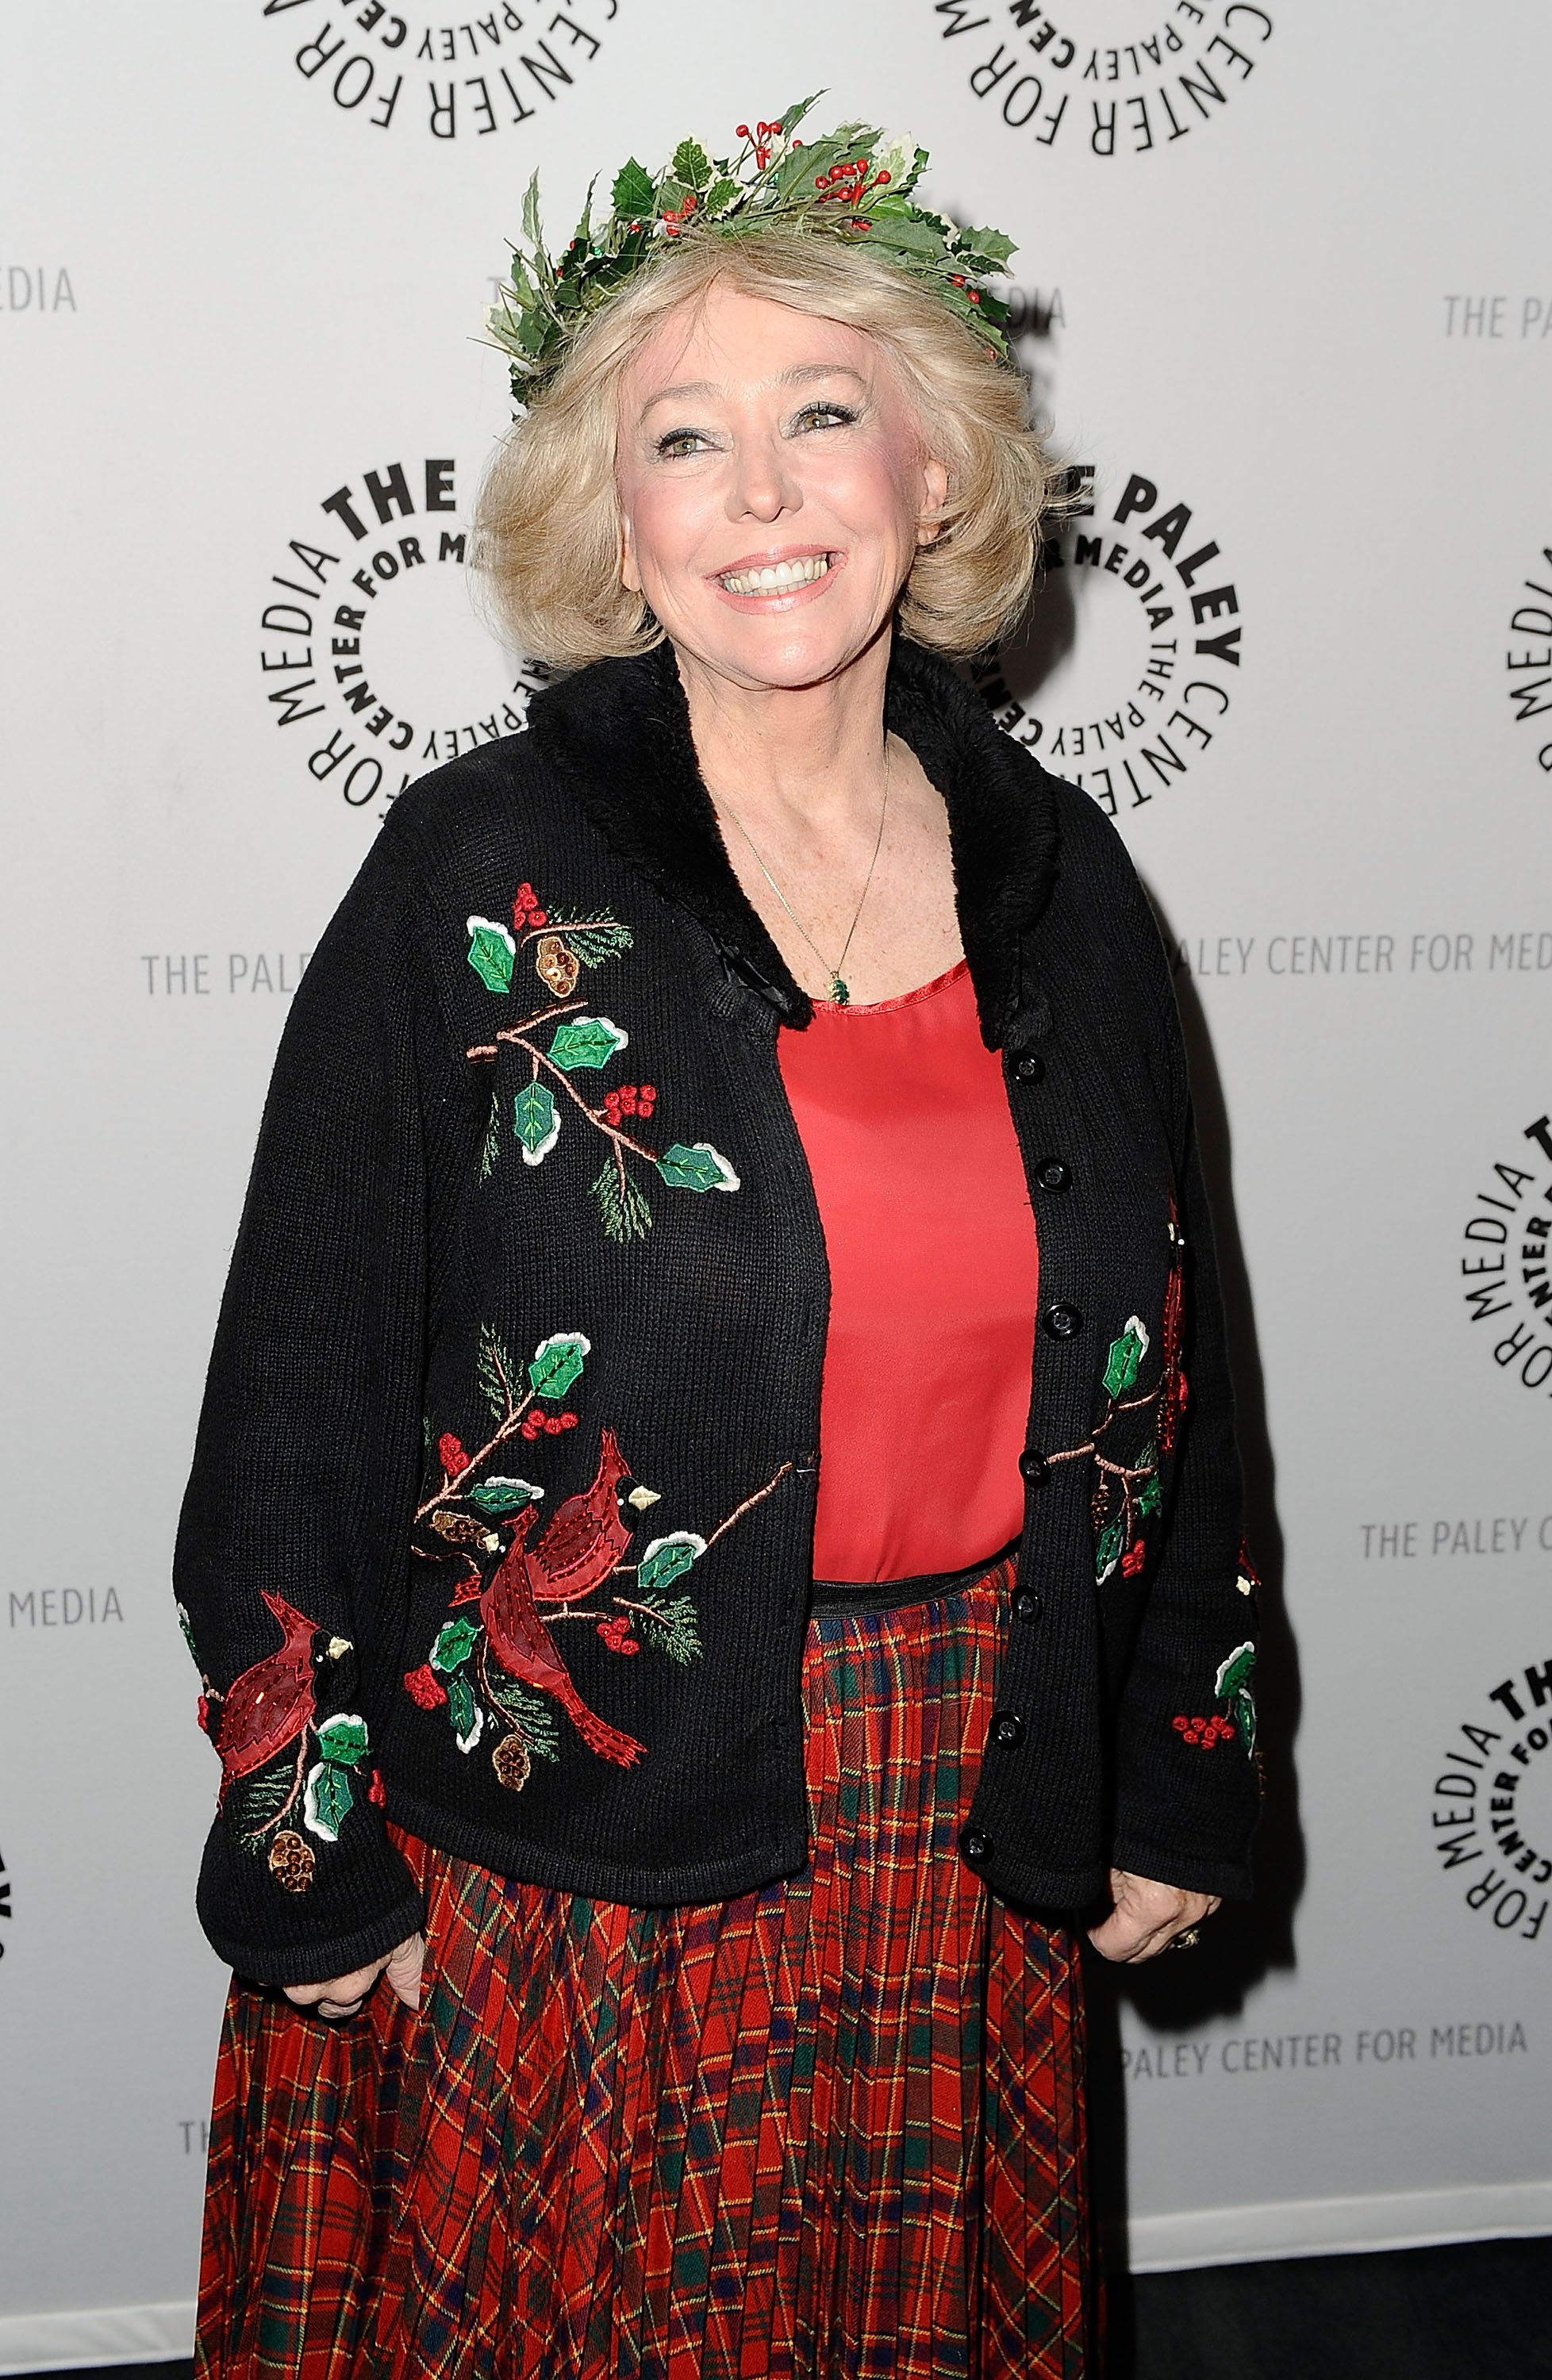 """Tina Cole attends the Paley Center for Media Presentation of """"Christmas with the King Family"""" at the Paley Center on December 20, 2009 in Beverly Hills, California. 